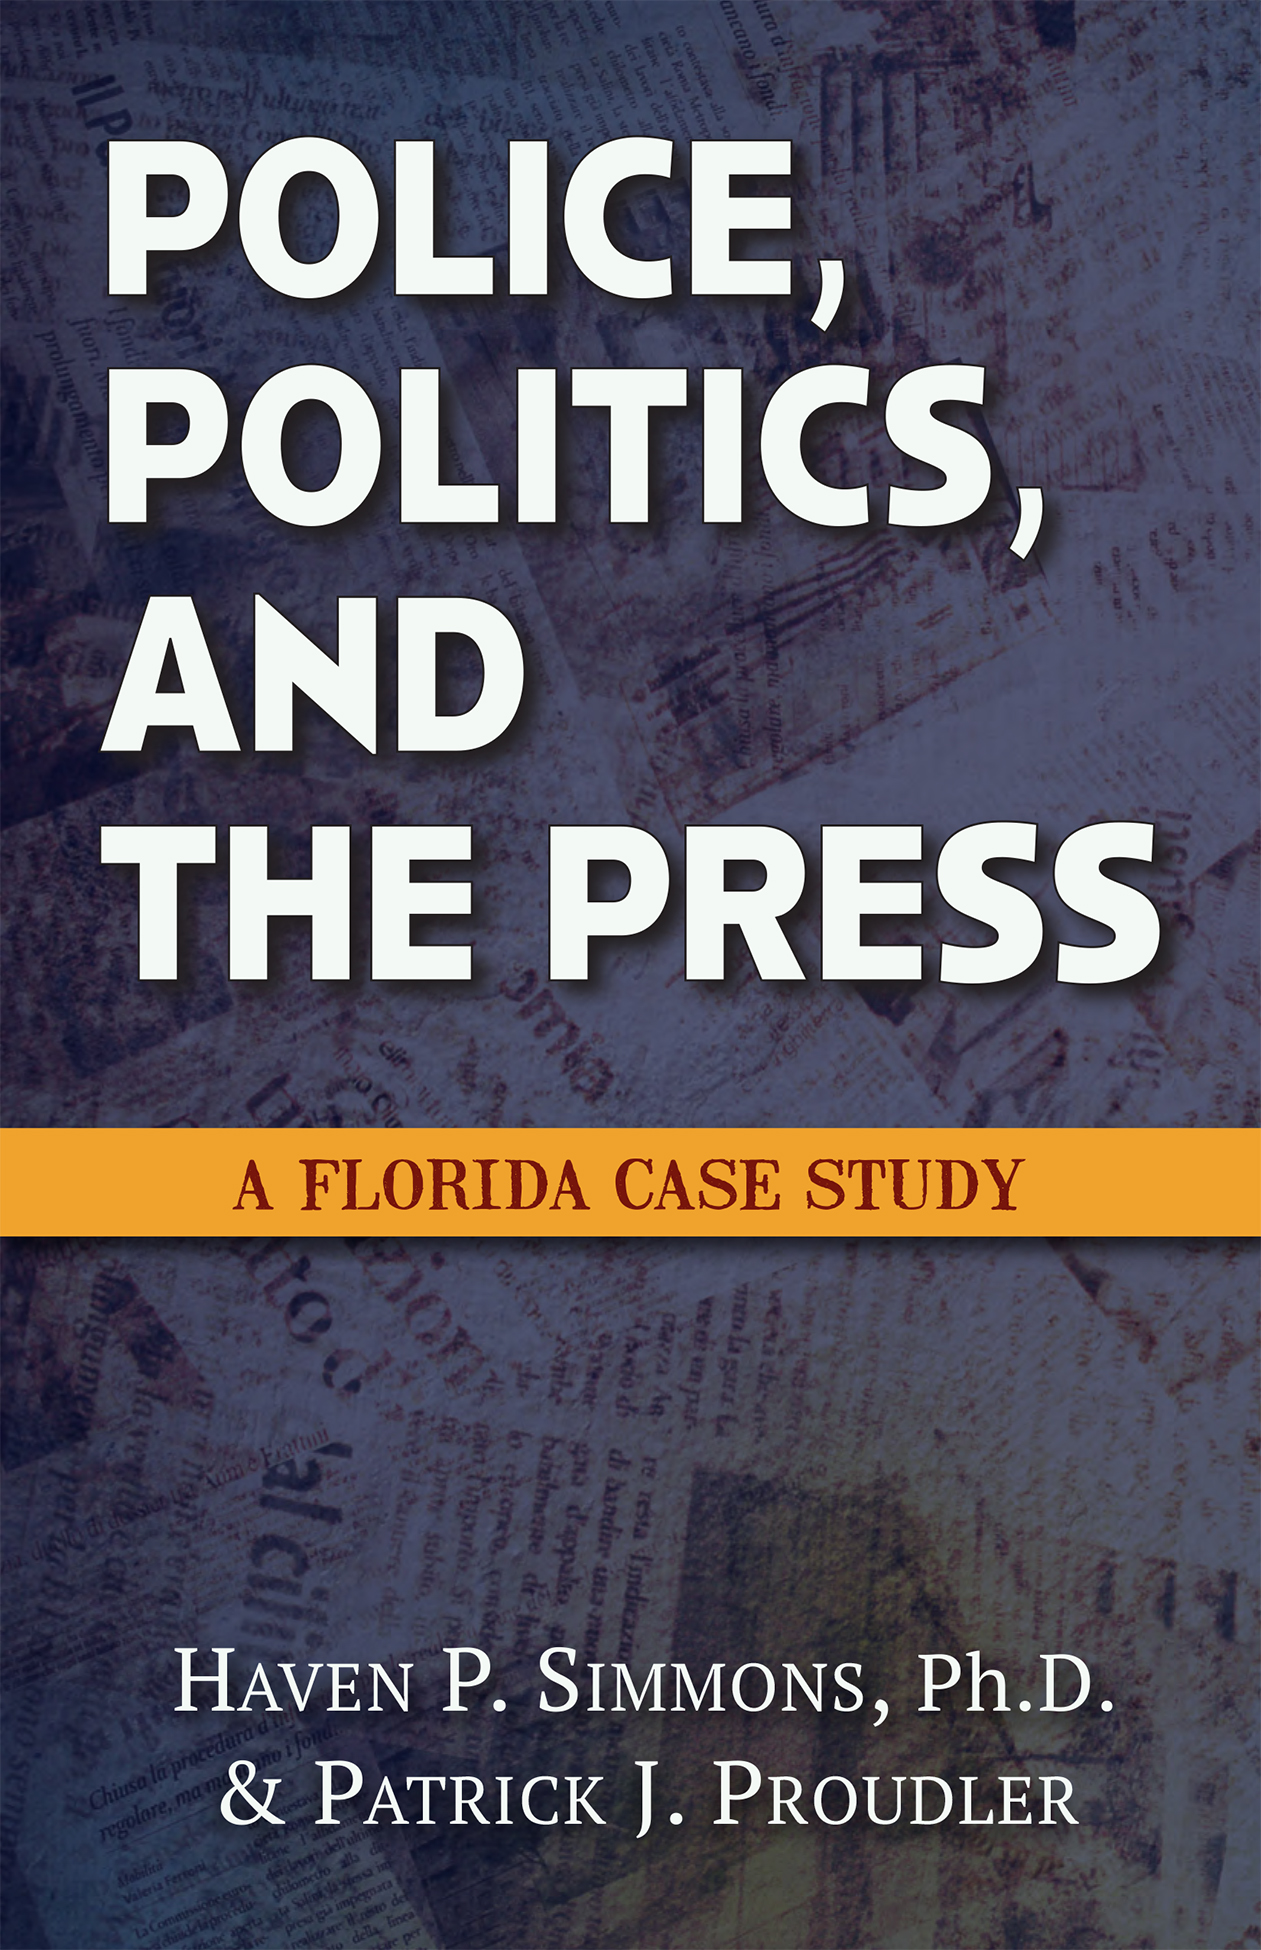 Police, Politics, and the Press: A Florida Case Study Image